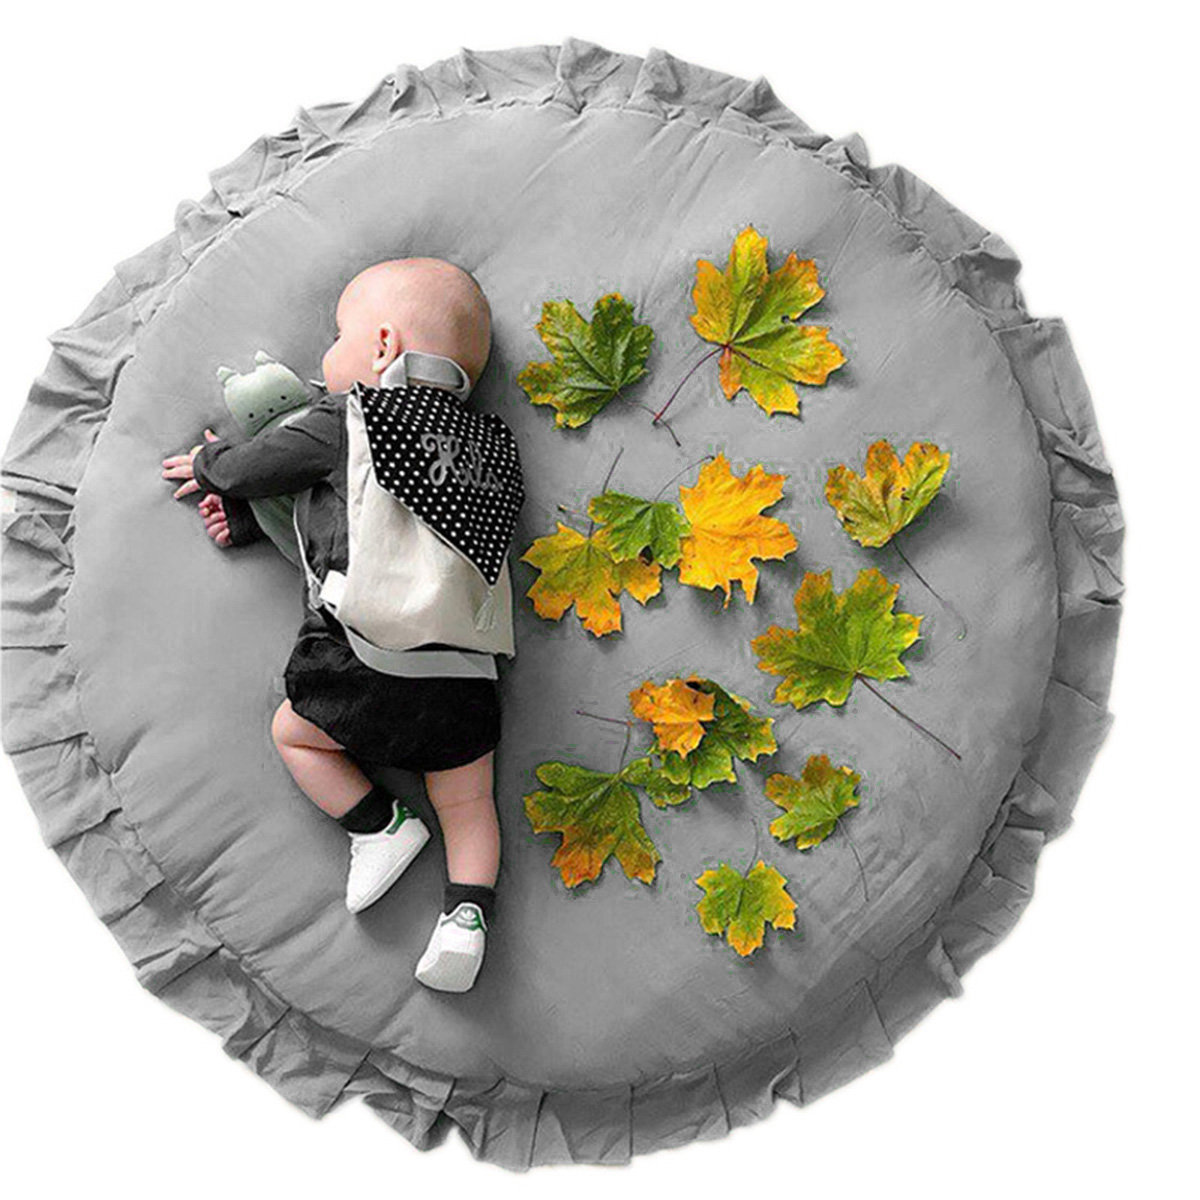 Thicken Baby Play Mats Soft Cotton Crawling Pad Kids Game Mat Round Floor Carpet Rug For Kids Room Decoration Blanket